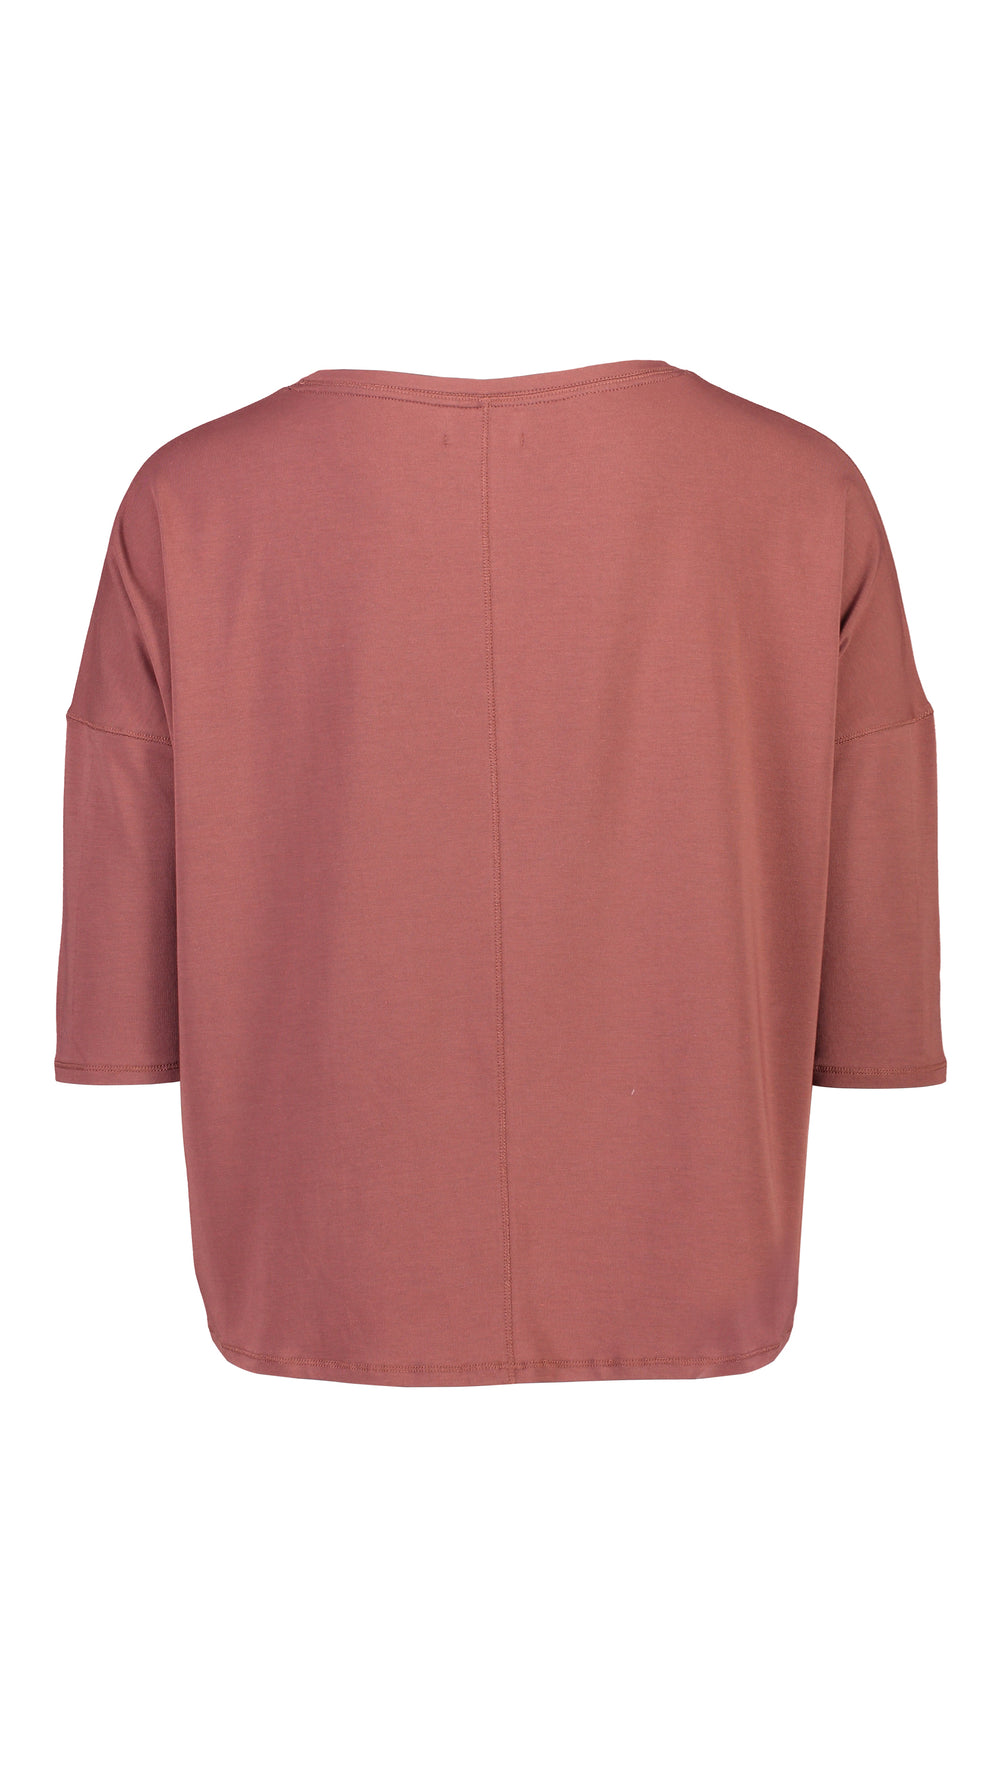 ELLY 3/4 SLEEVE - TERRACOTTA